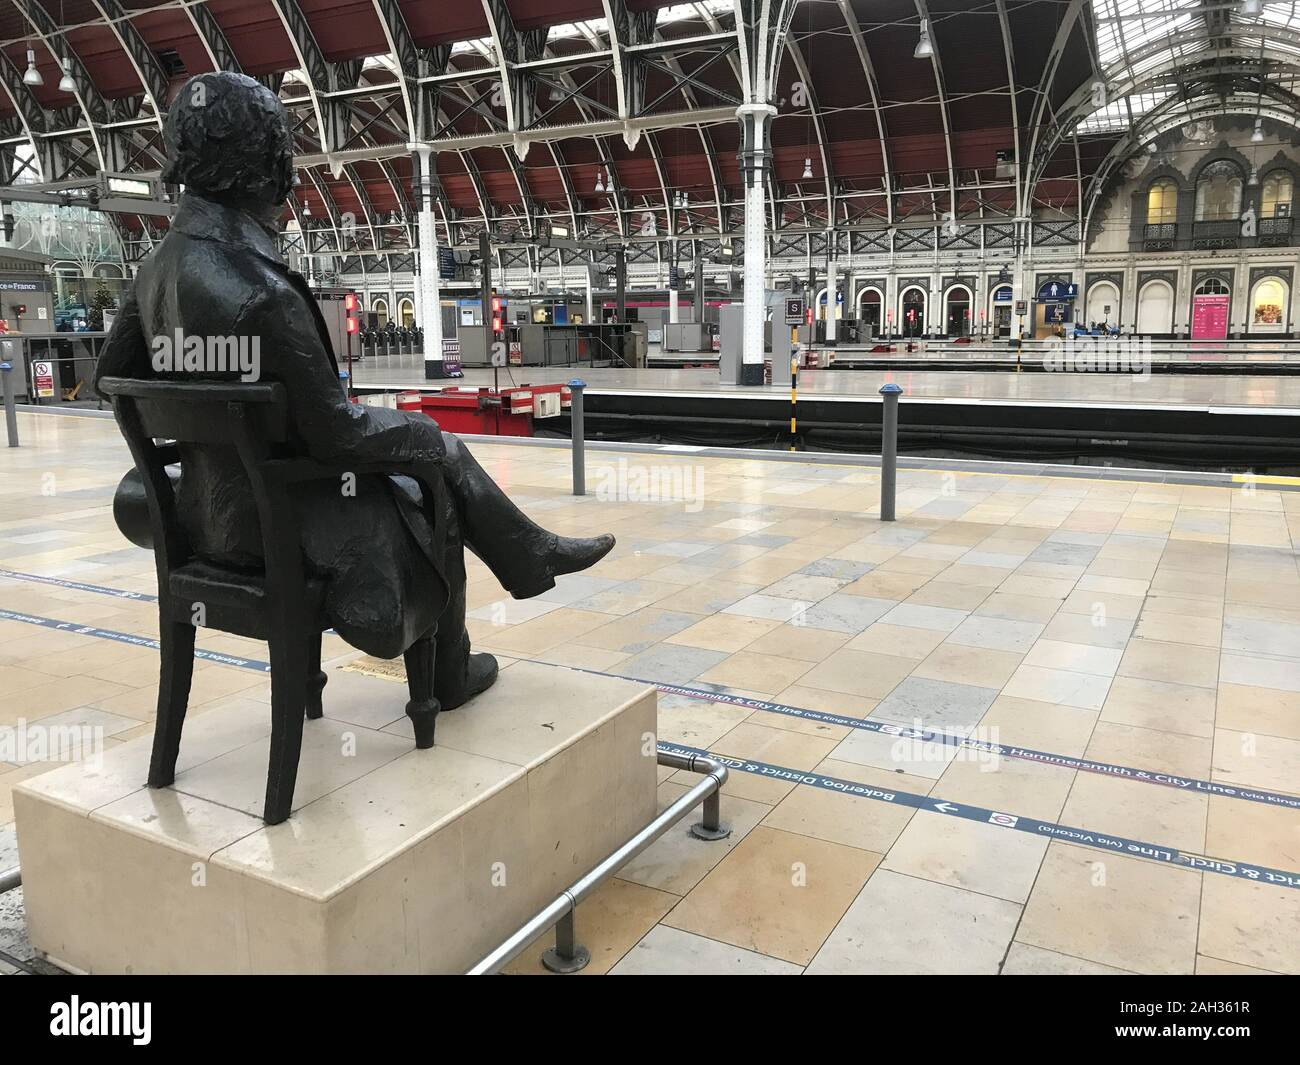 A statue of Isambard Kingdom Brunel looks out over London's Paddington Station which is empty of trains on Christmas Eve because of major engineering work over the holiday period on the railway line between Paddington and Slough. Stock Photo